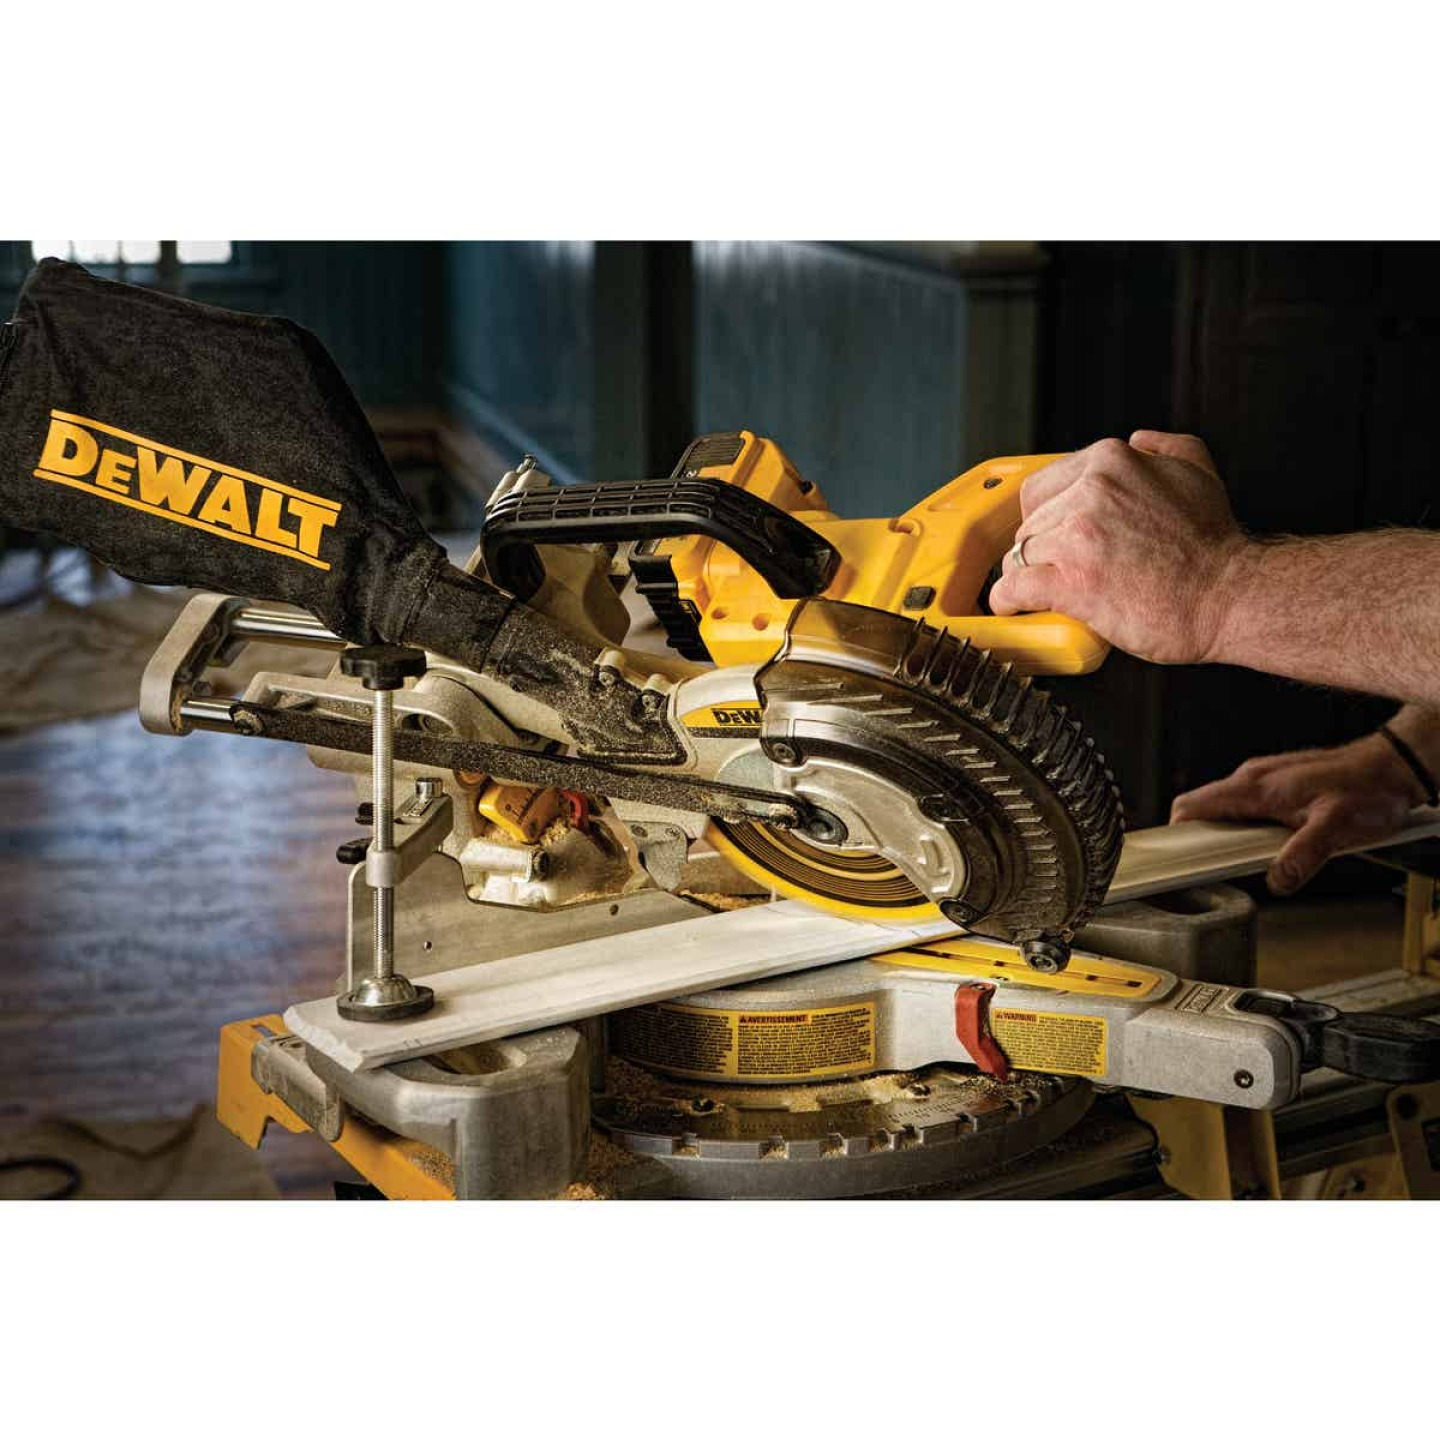 DeWalt 20 Volt MAX Lithium-Ion 7-1/4 In. Sliding Compound Cordless Miter Saw Kit Image 2